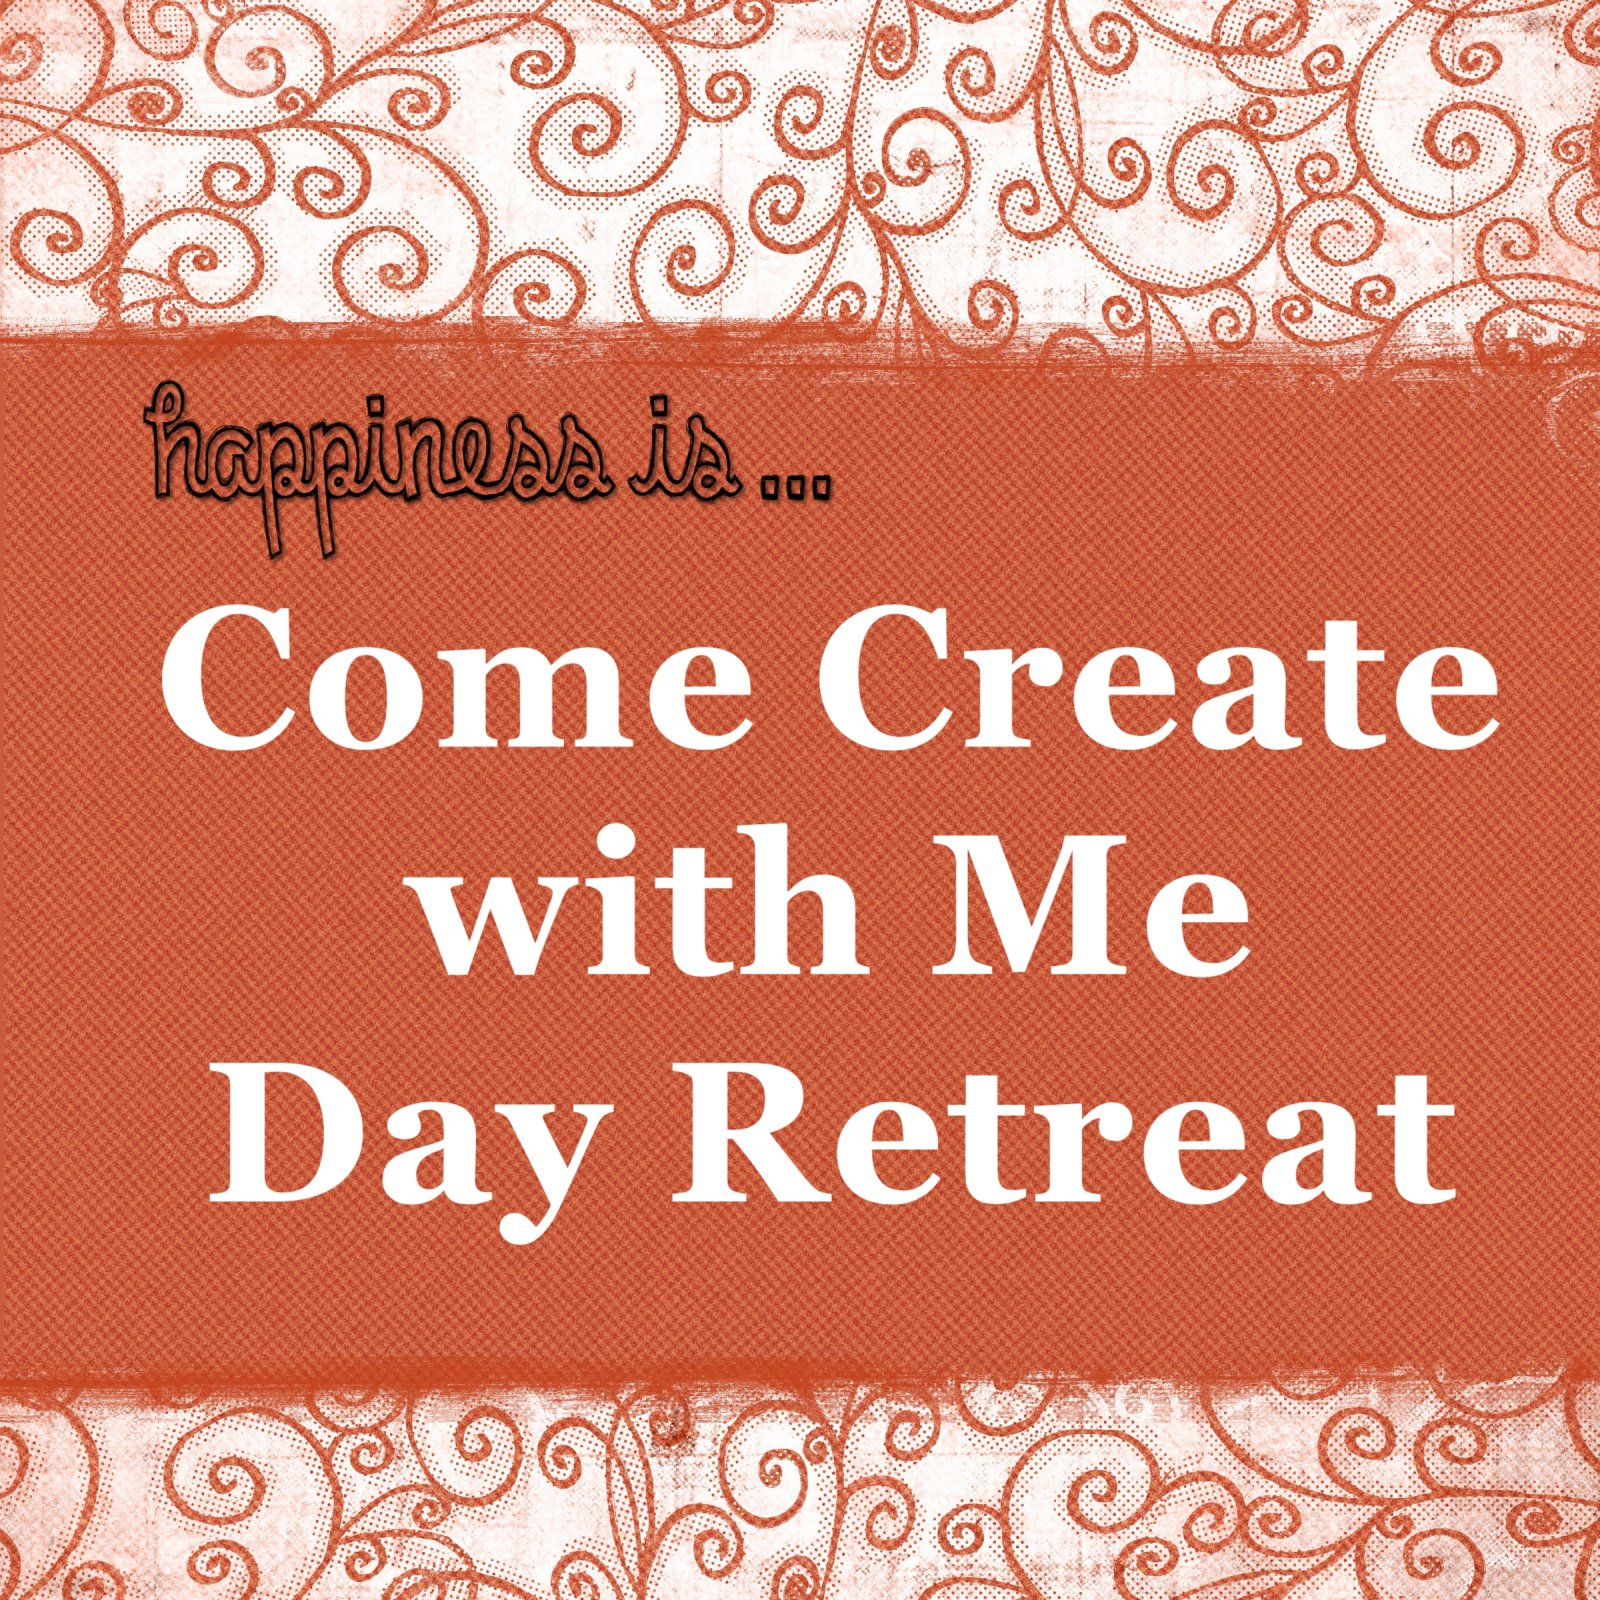 Come Create with Me Day Retreat--August 31, 2021